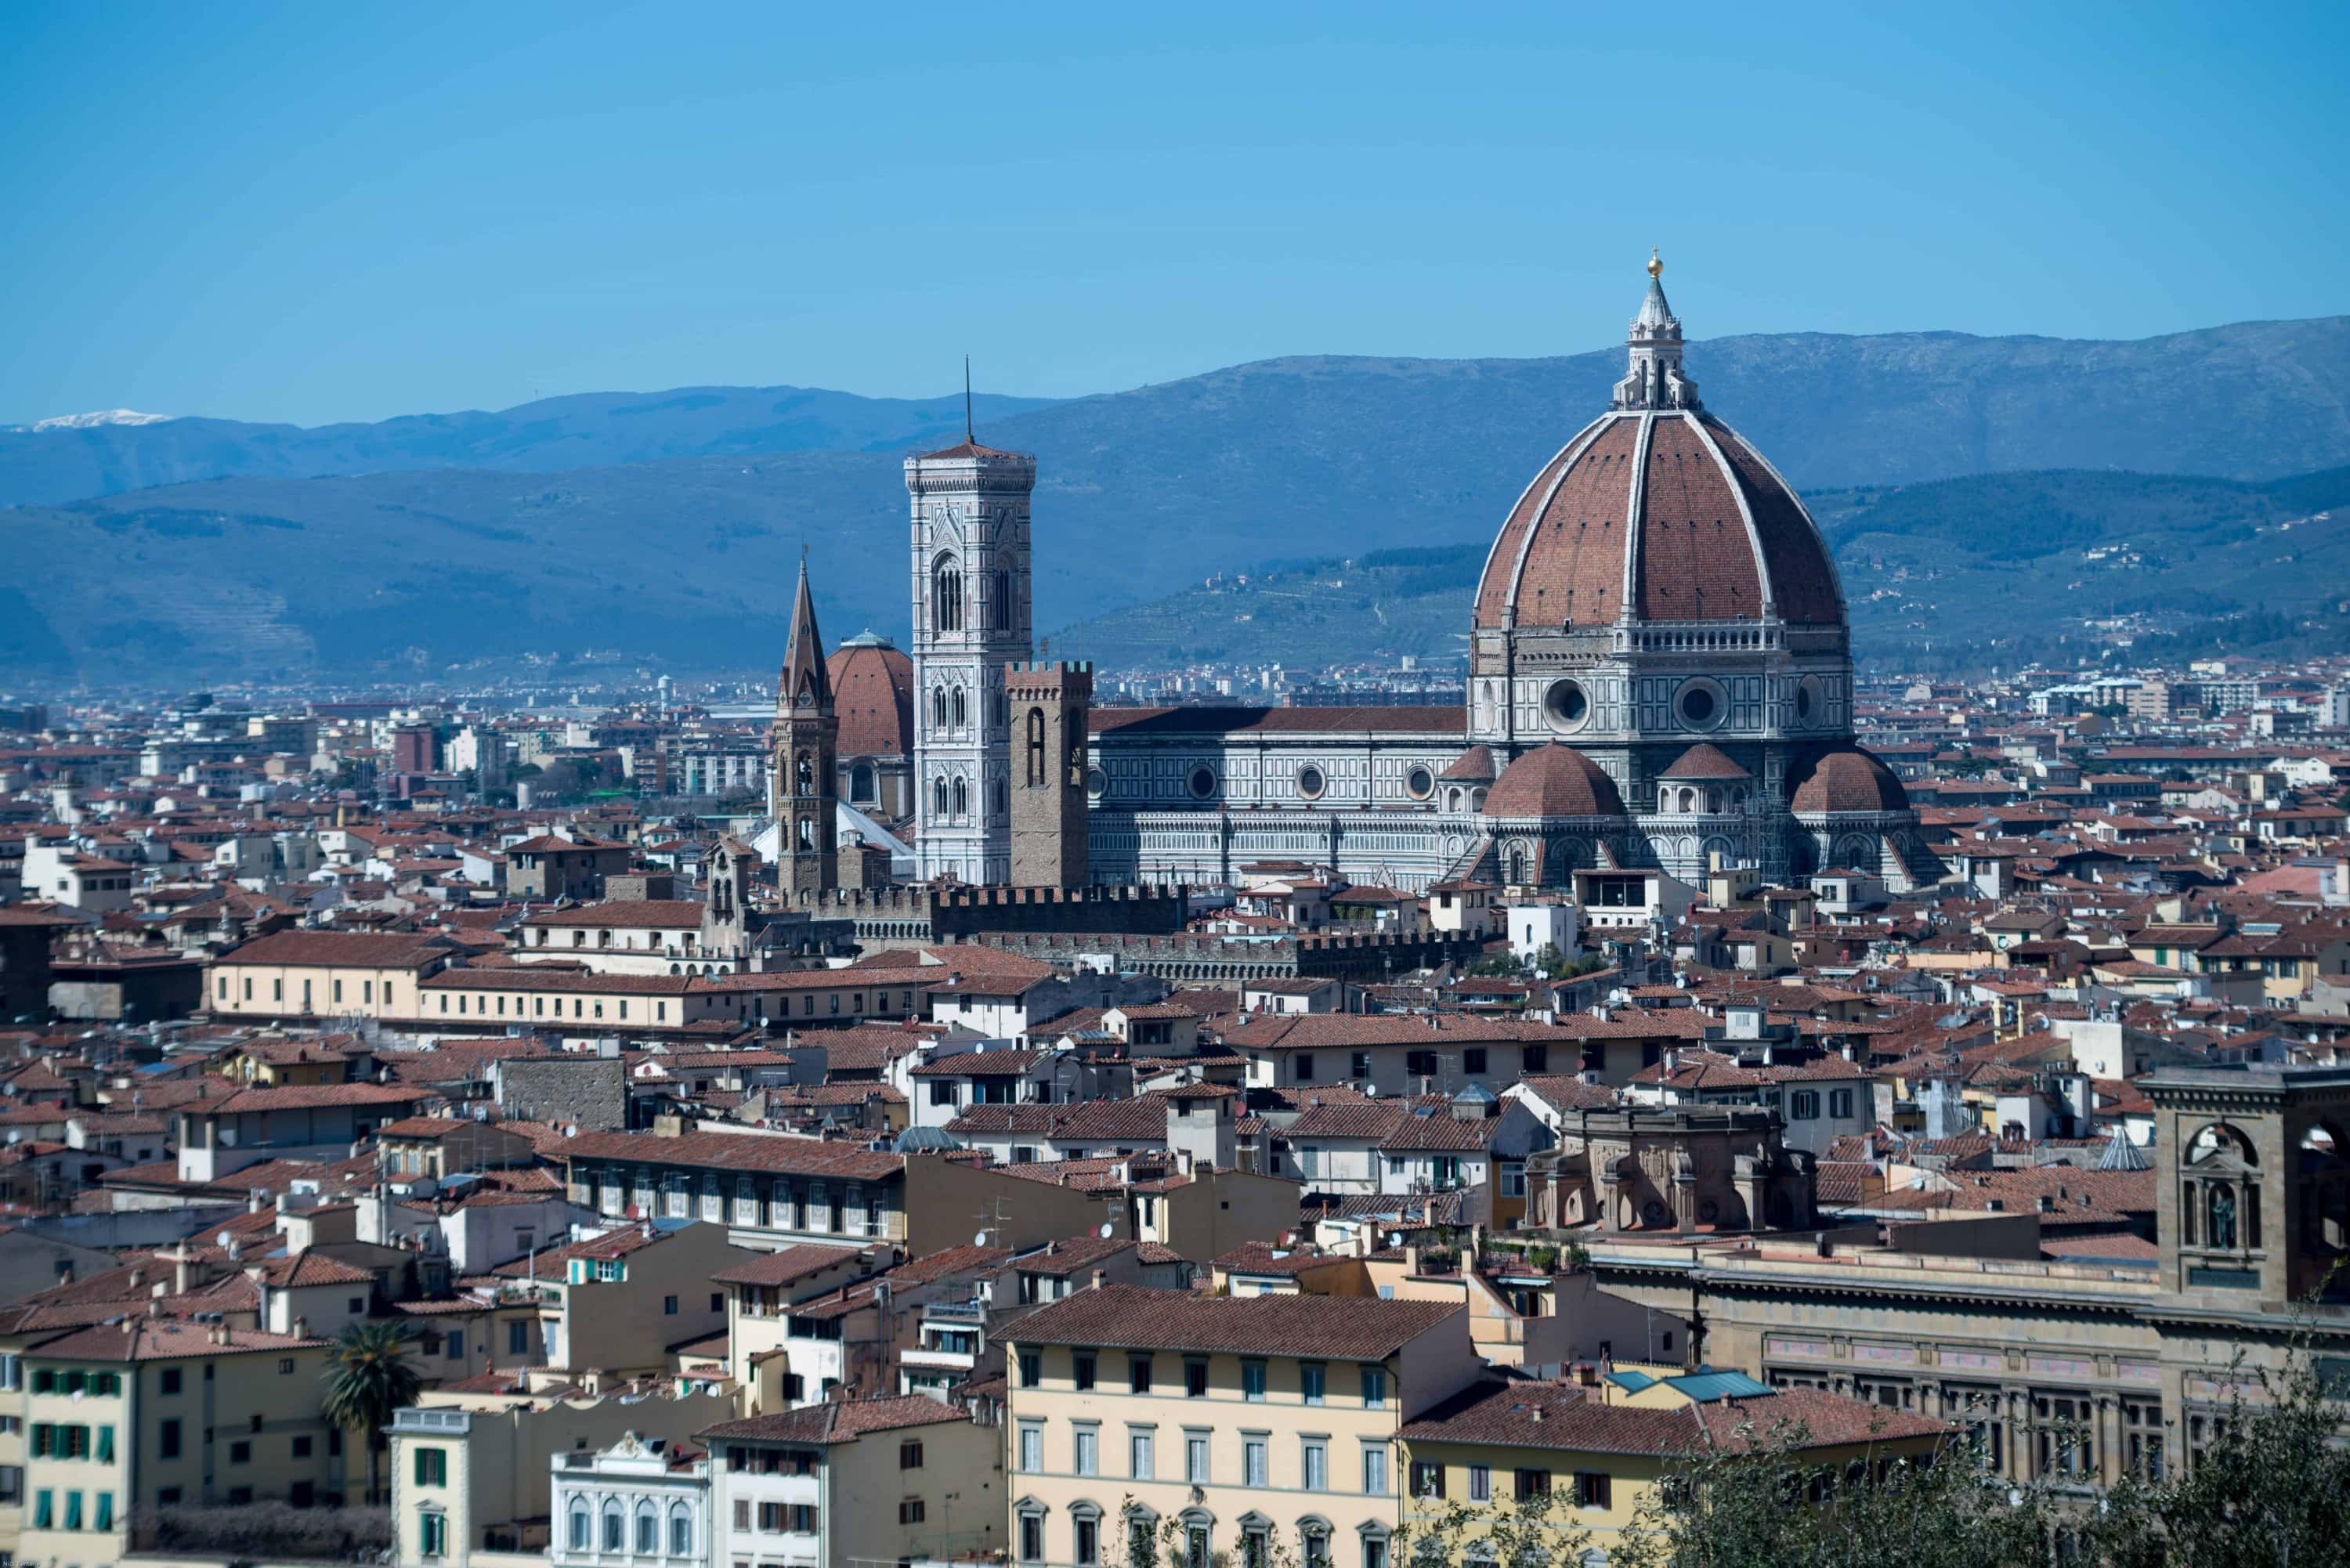 Florence seen from above